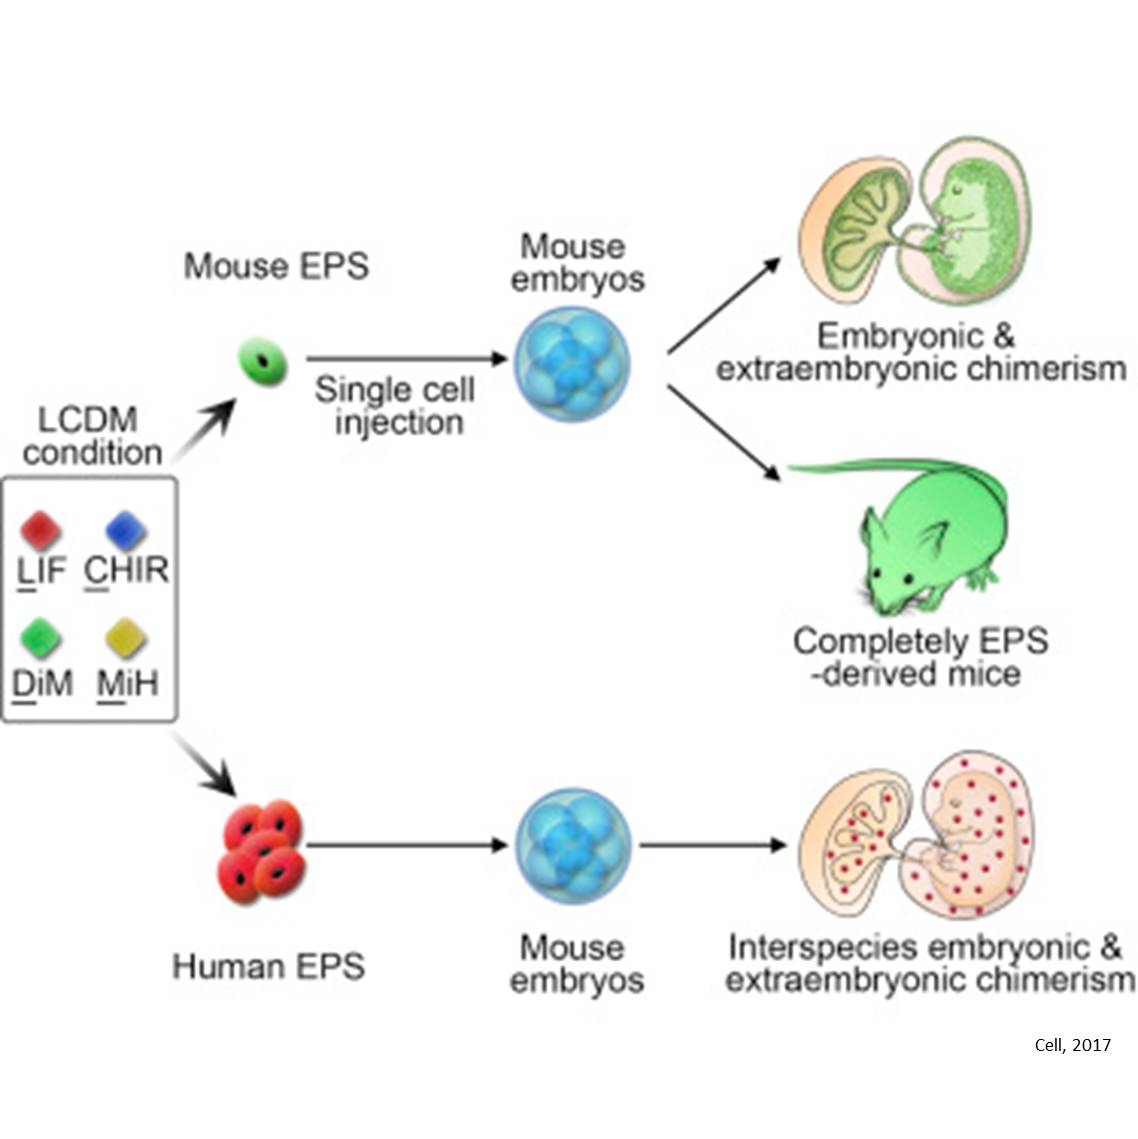 A new technique to generate both embryonic and non-embryonic tissues from cultured stem cells